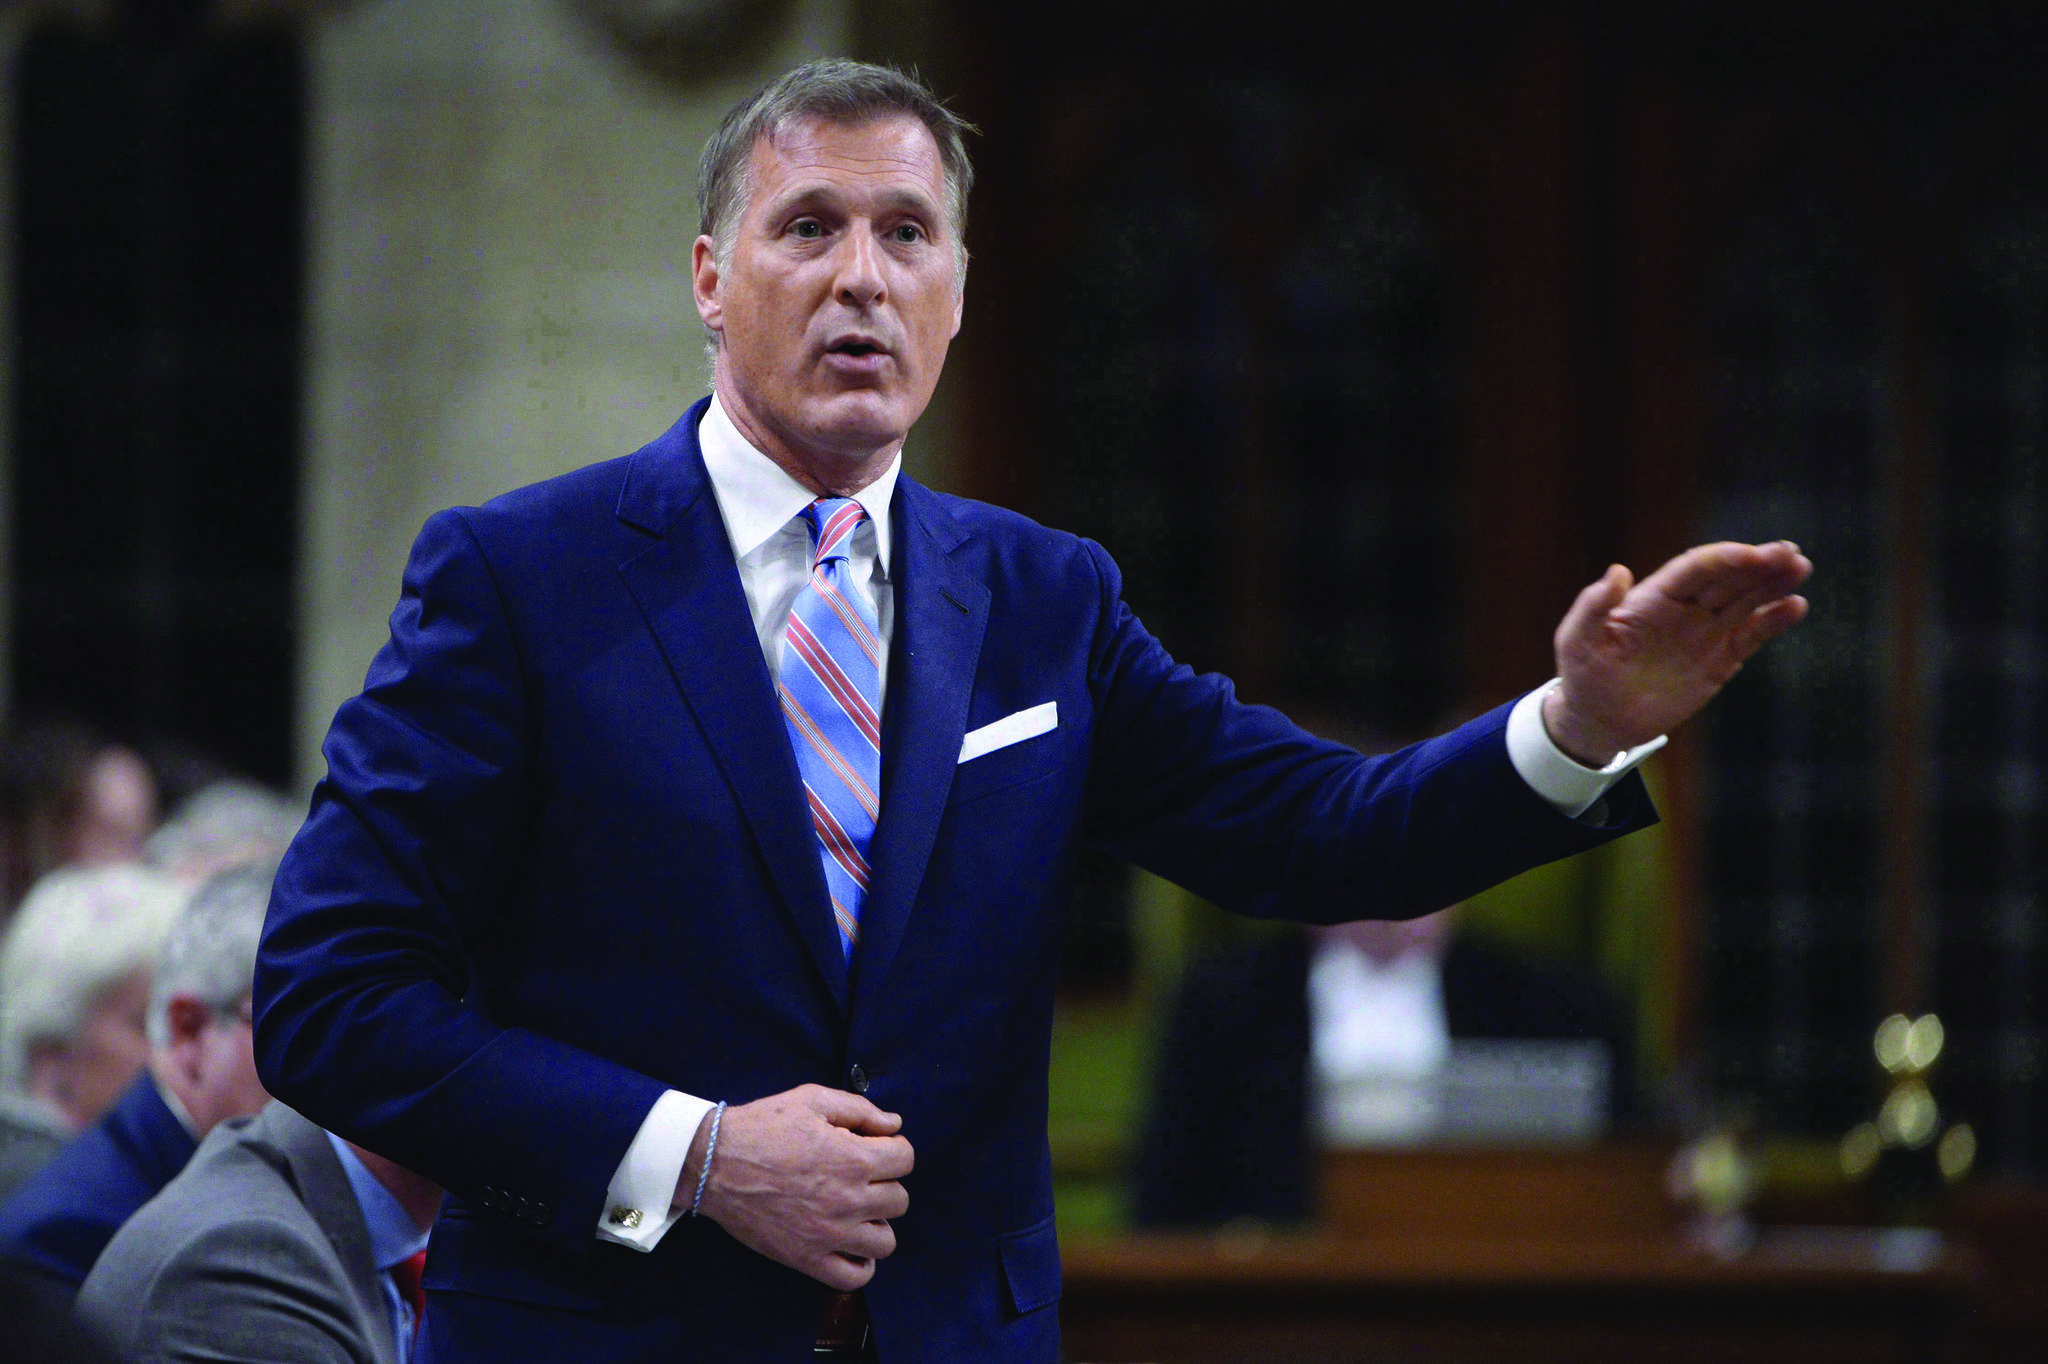 Quebec MP Maxime Bernier is shown during Question Period in the House of Commons in Ottawa on Thursday, Sept. 28, 2017. THE CANADIAN PRESS/Adrian Wyld